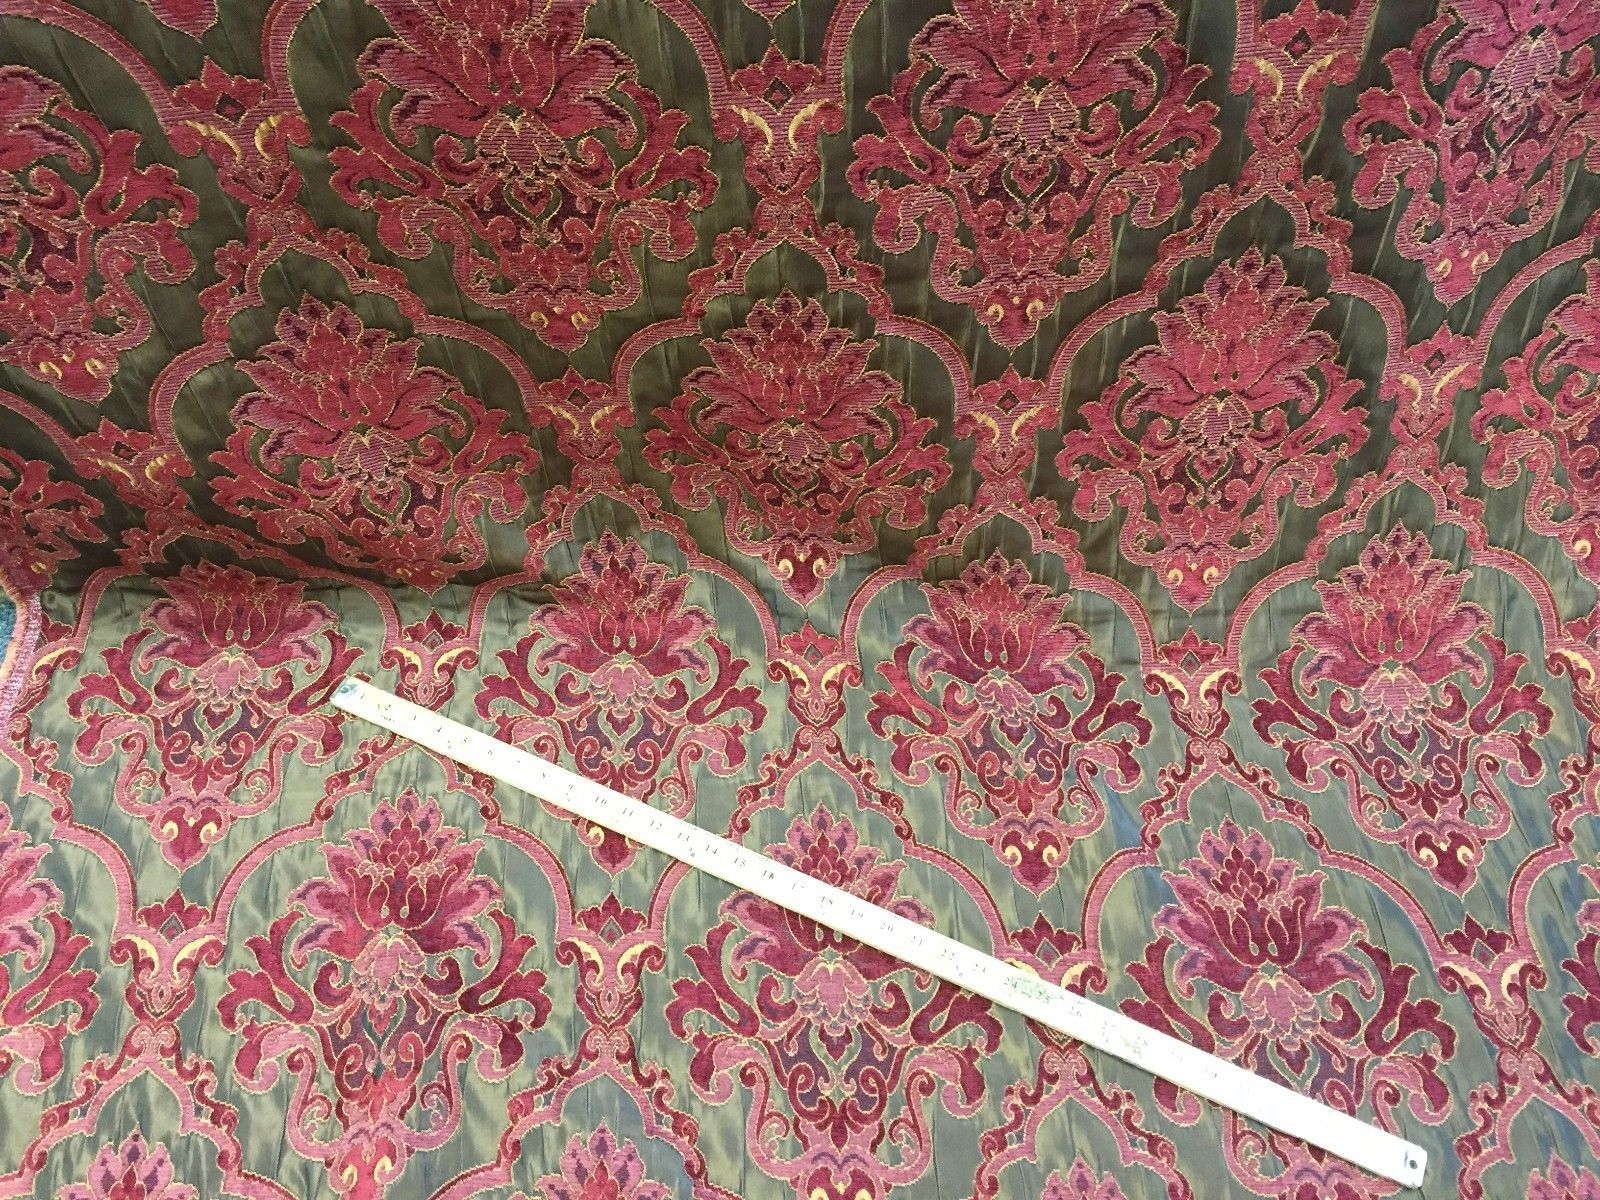 Chenille upholstery Drapery Damask Luxury Multi Color furniture fabric sold BTY - KINGDOM OF FABRICS